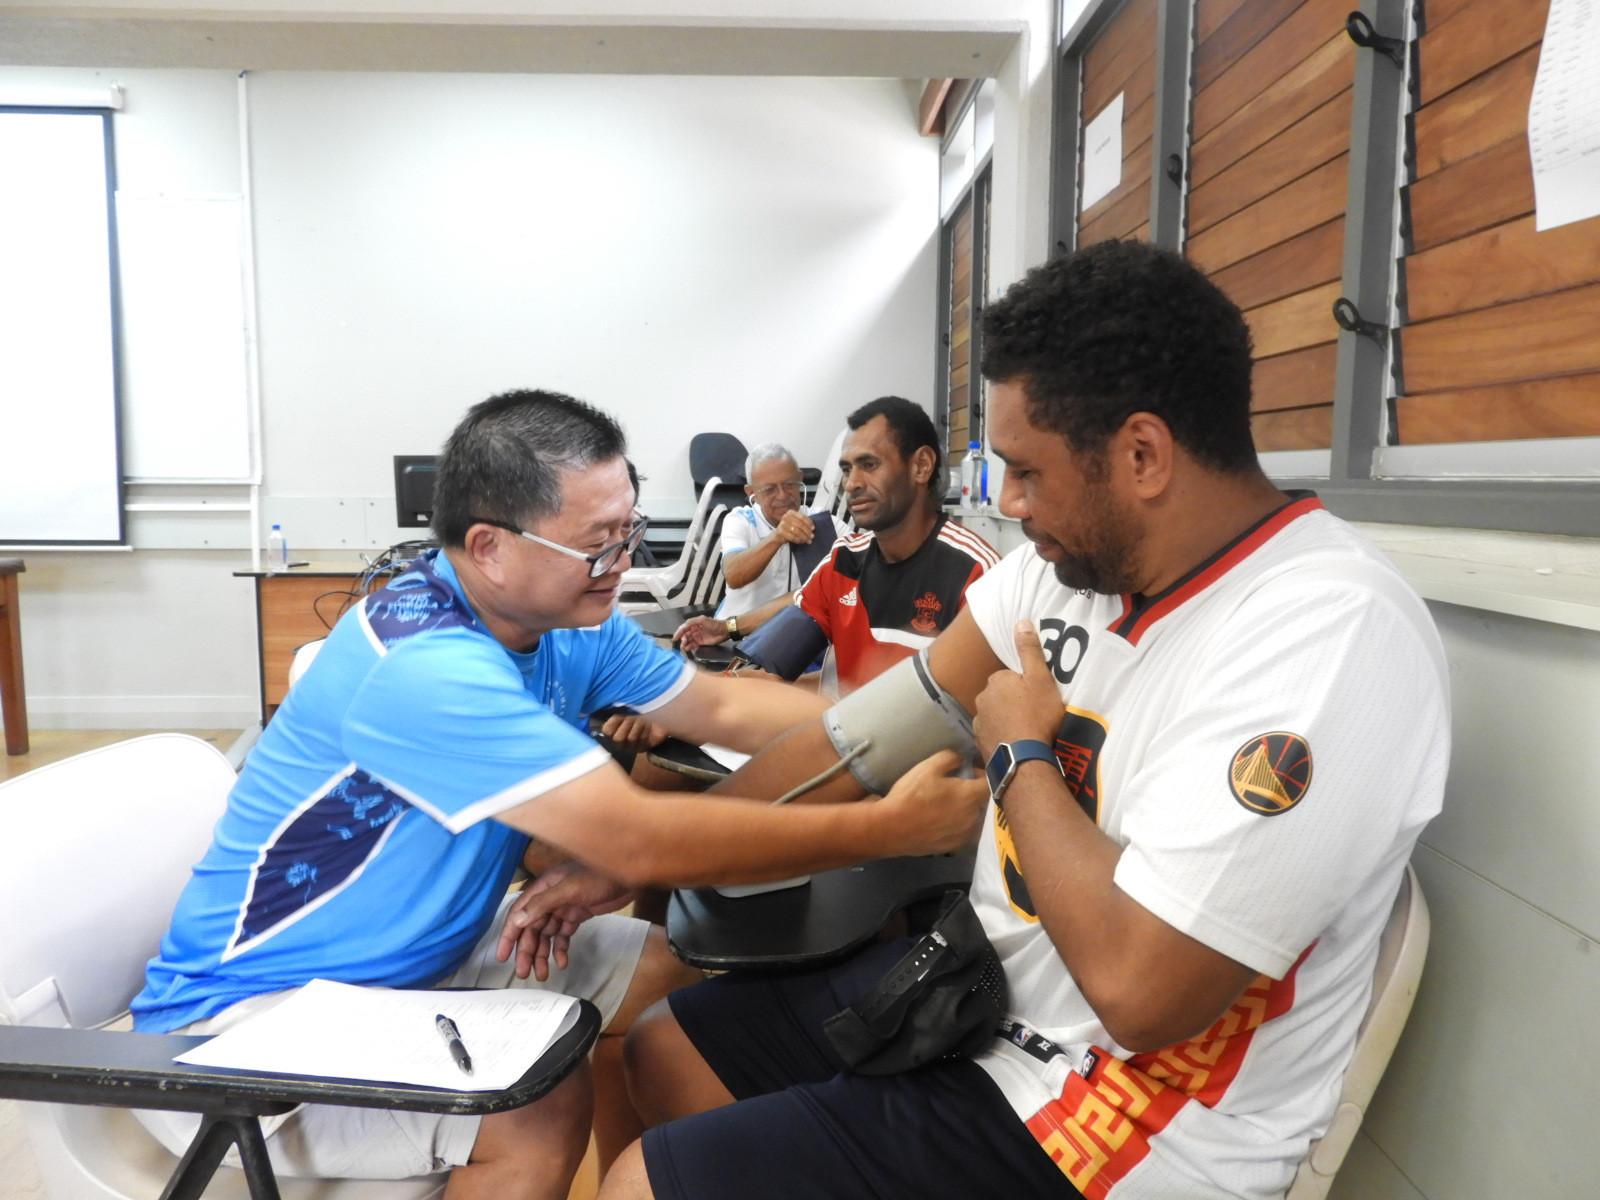 Fijian athletes and officials due to parcipate in next month's Samoa 2019 Pacific Games have undergone a final medical screening at the headquarters of their National Olympic Committee, FASANOC ©fasanoc.org